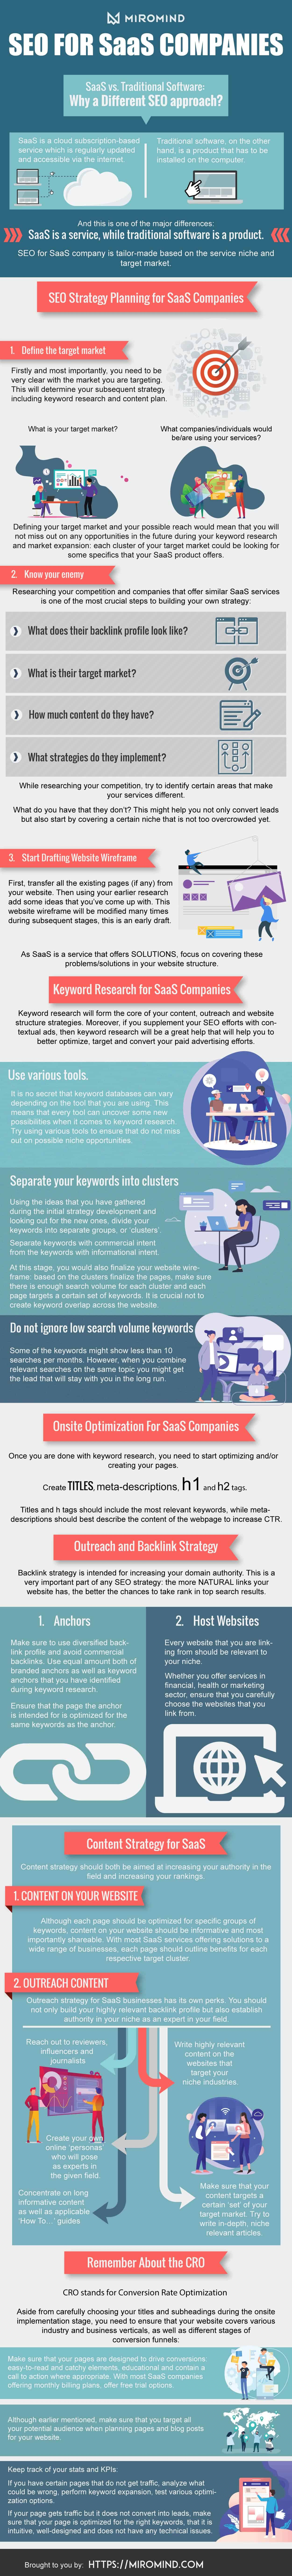 SEO for SaaS Companies Infographic